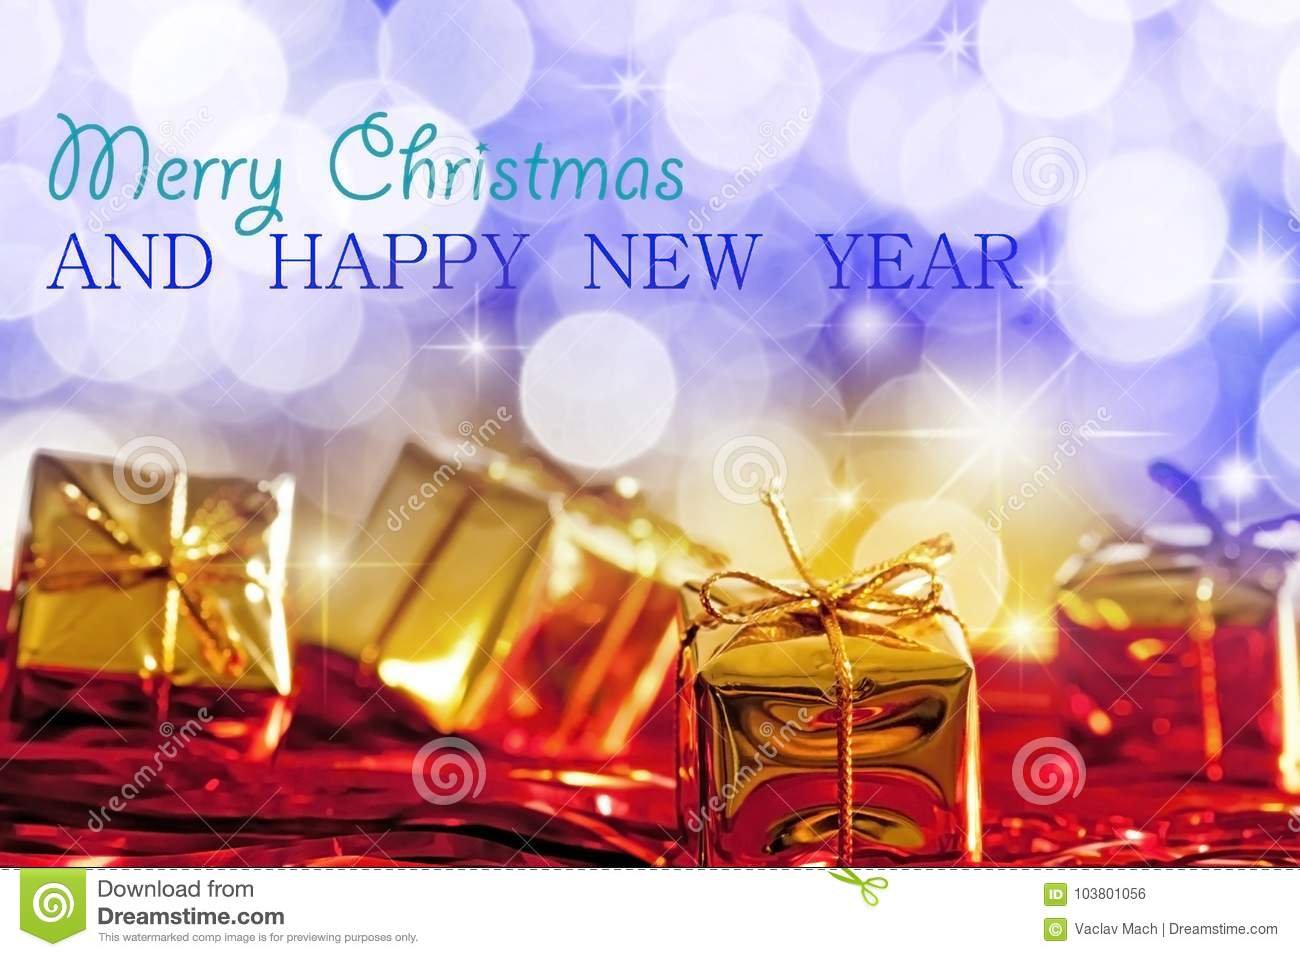 Christmas And New Year Greetings Card Stock Photo Image Of Present